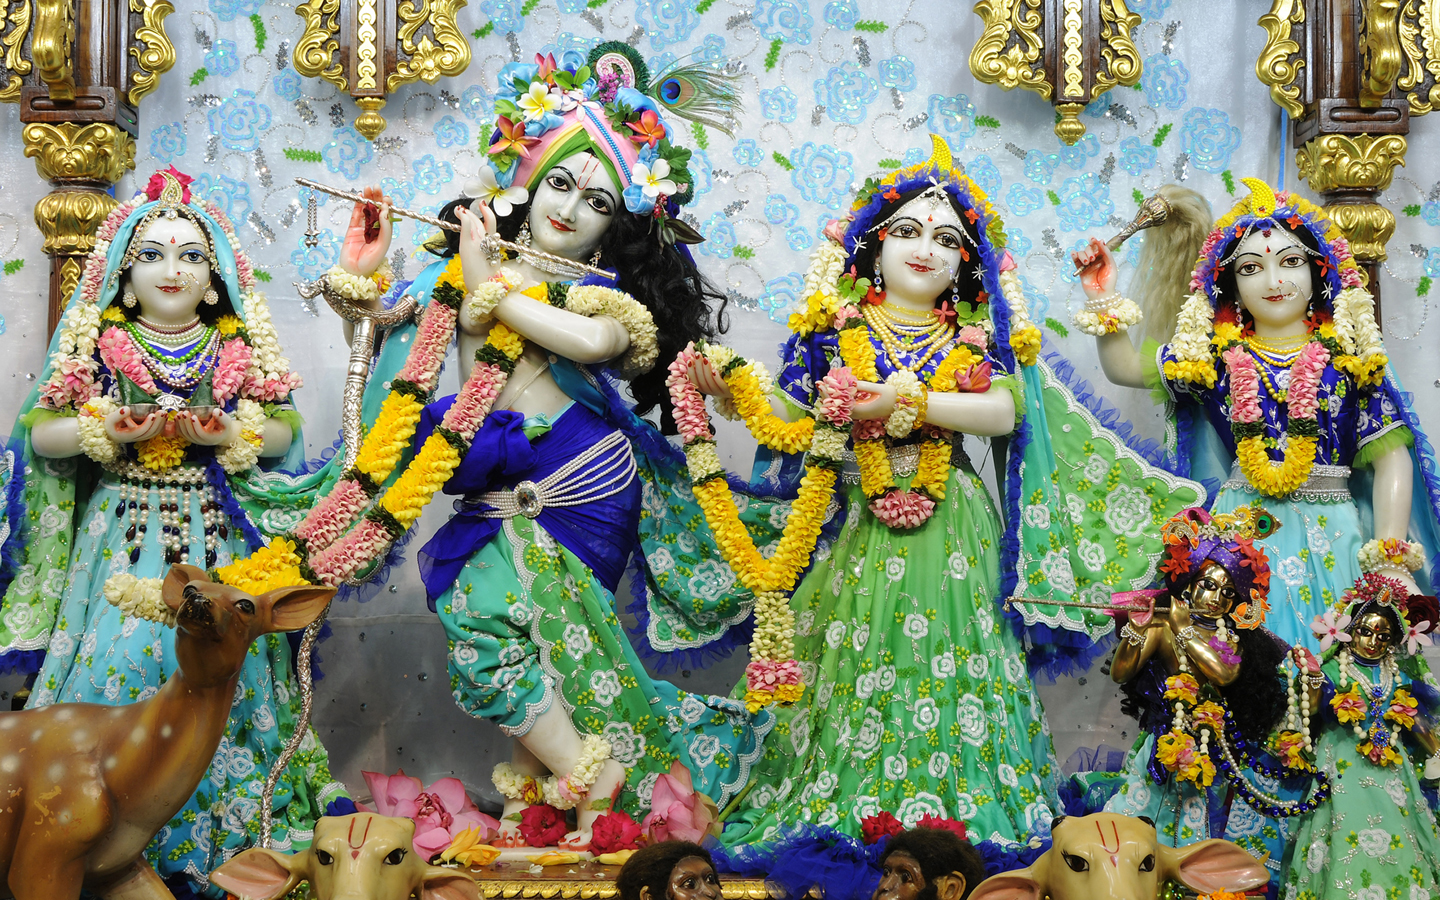 Sri Sri Radha Gopinath Lalita Vishakha Wallpaper (069) Size 1440x900 Download